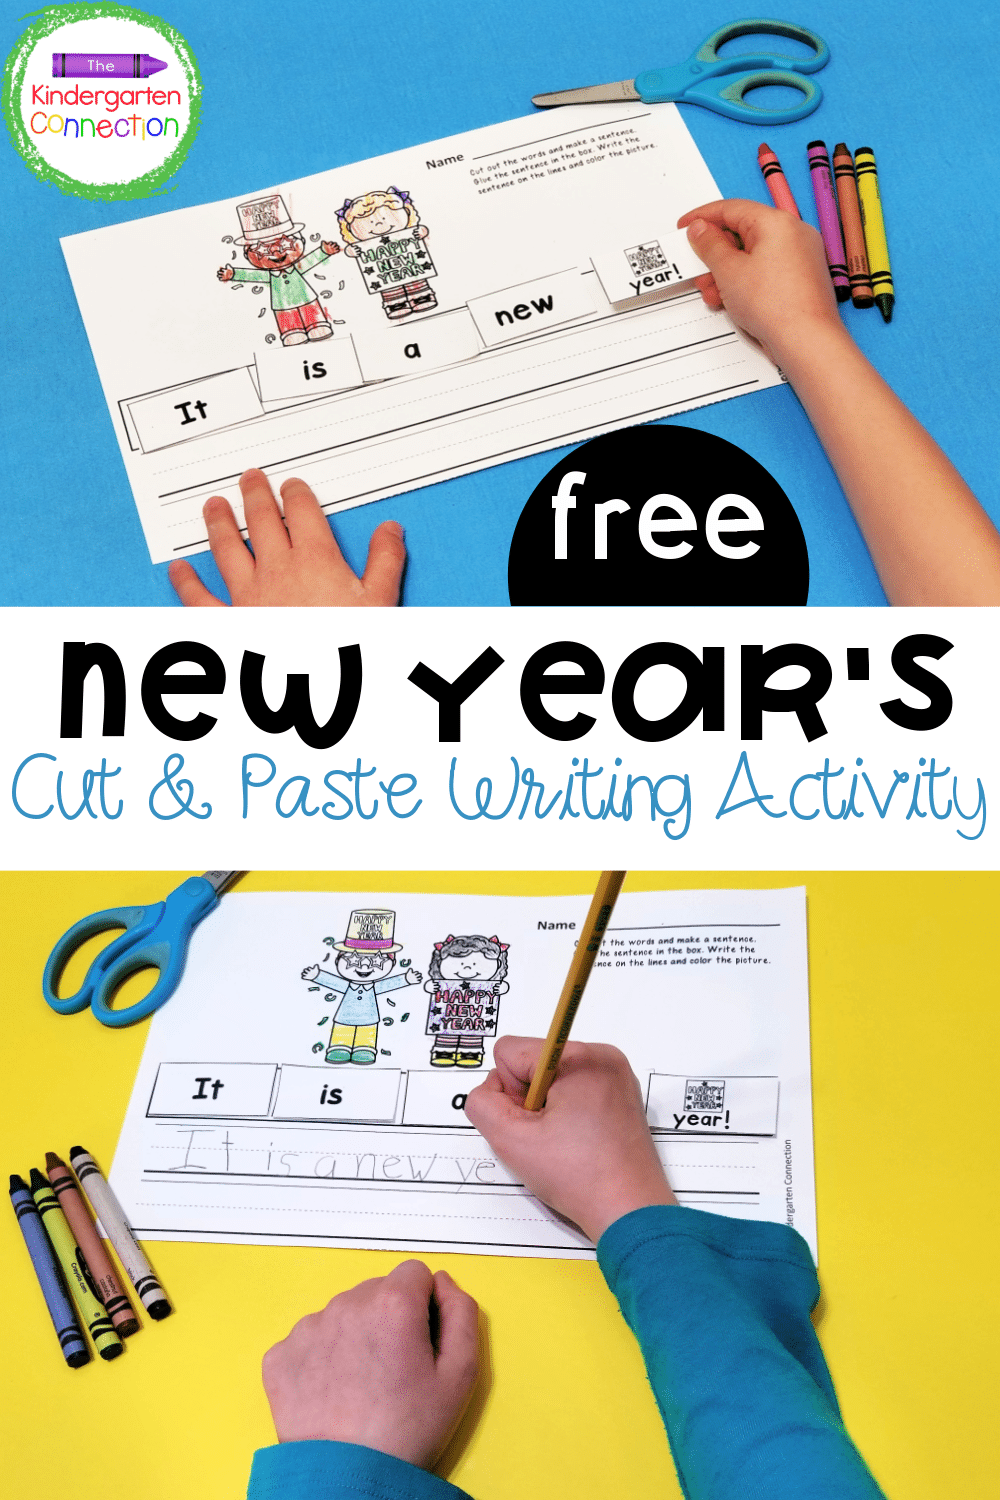 This FREE New Year's Cut and Paste Sentence Activity is great for early learners to work on scissor skills, sight words, and handwriting!